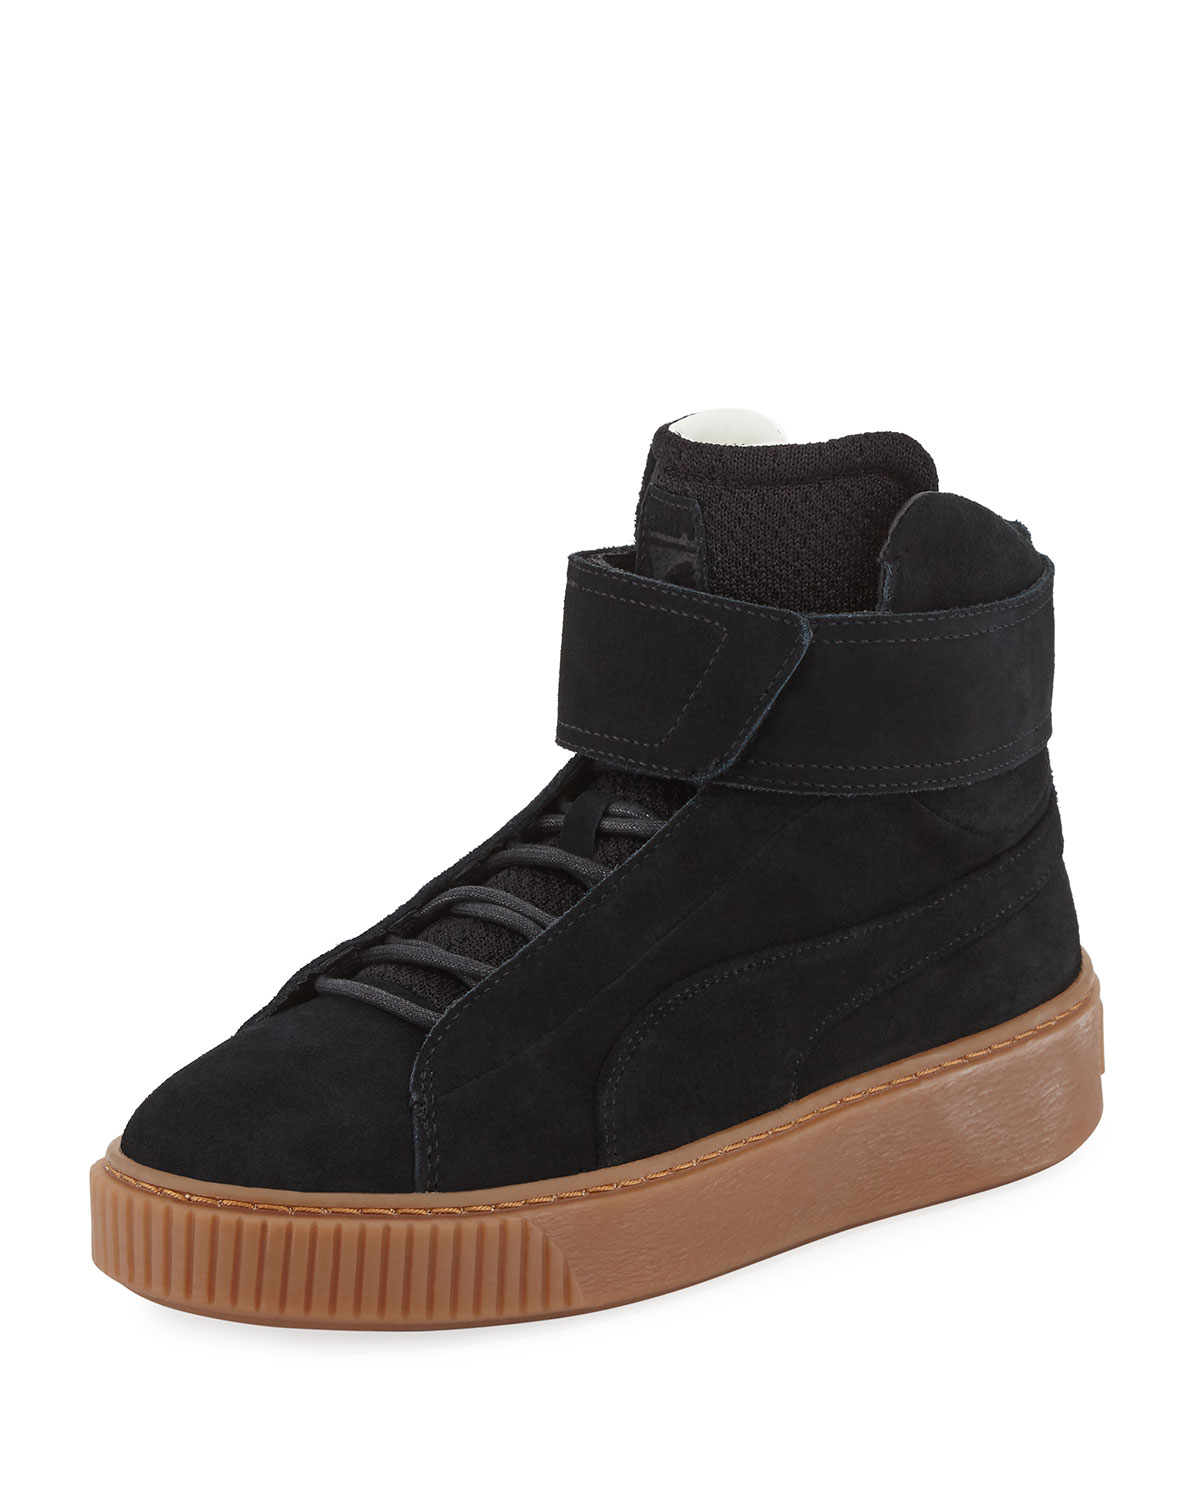 puma suede high top sneakers